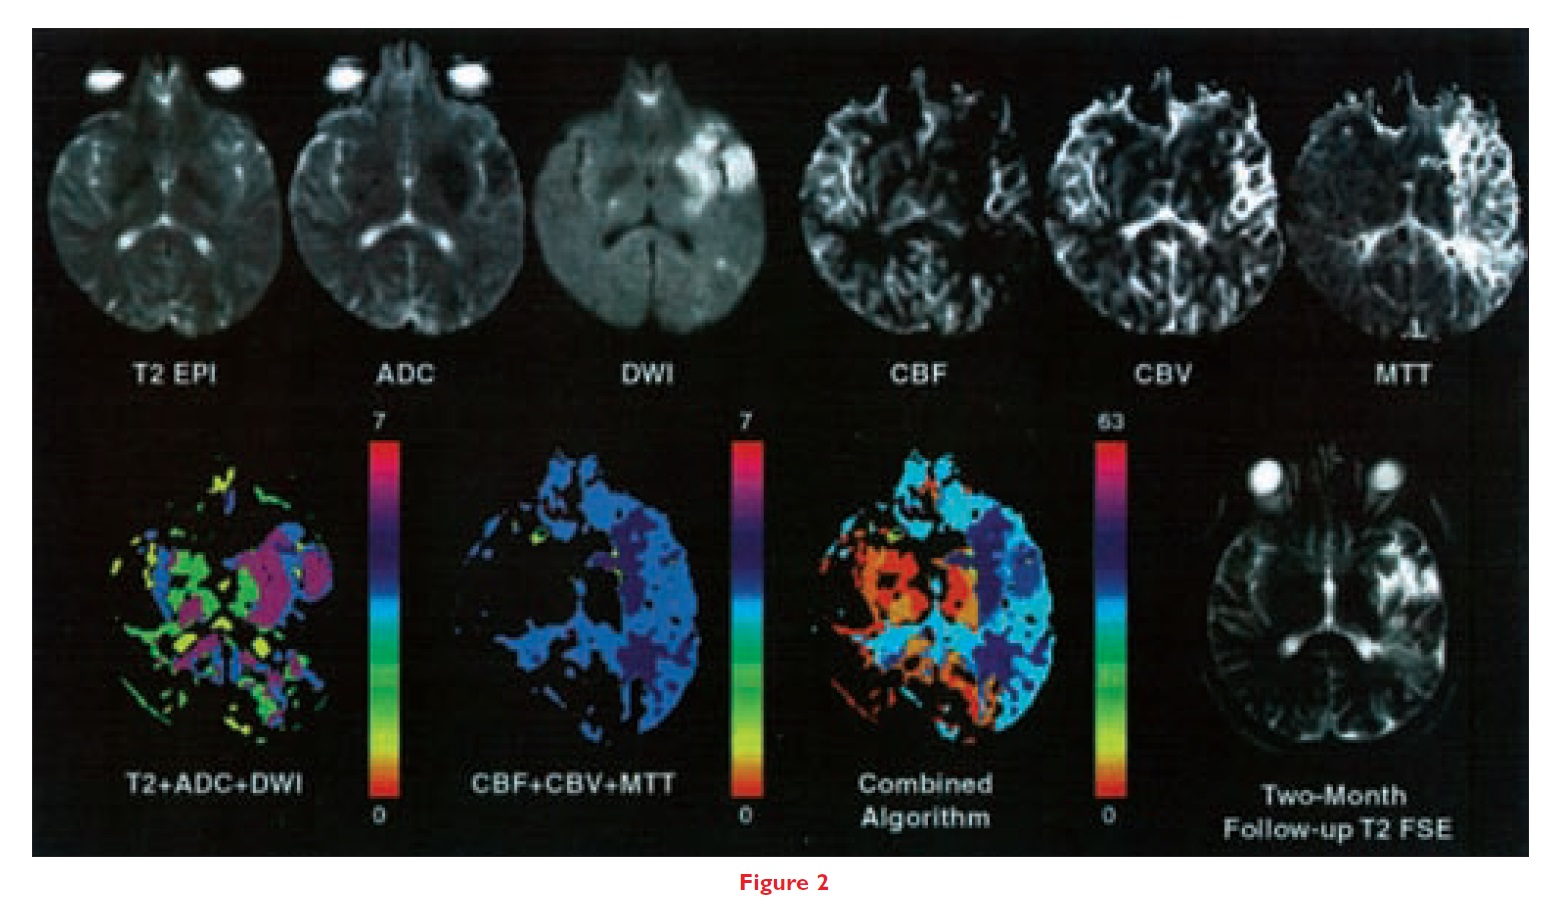 Figure 2 Comparisons of different MRI parameters in a human stroke patient